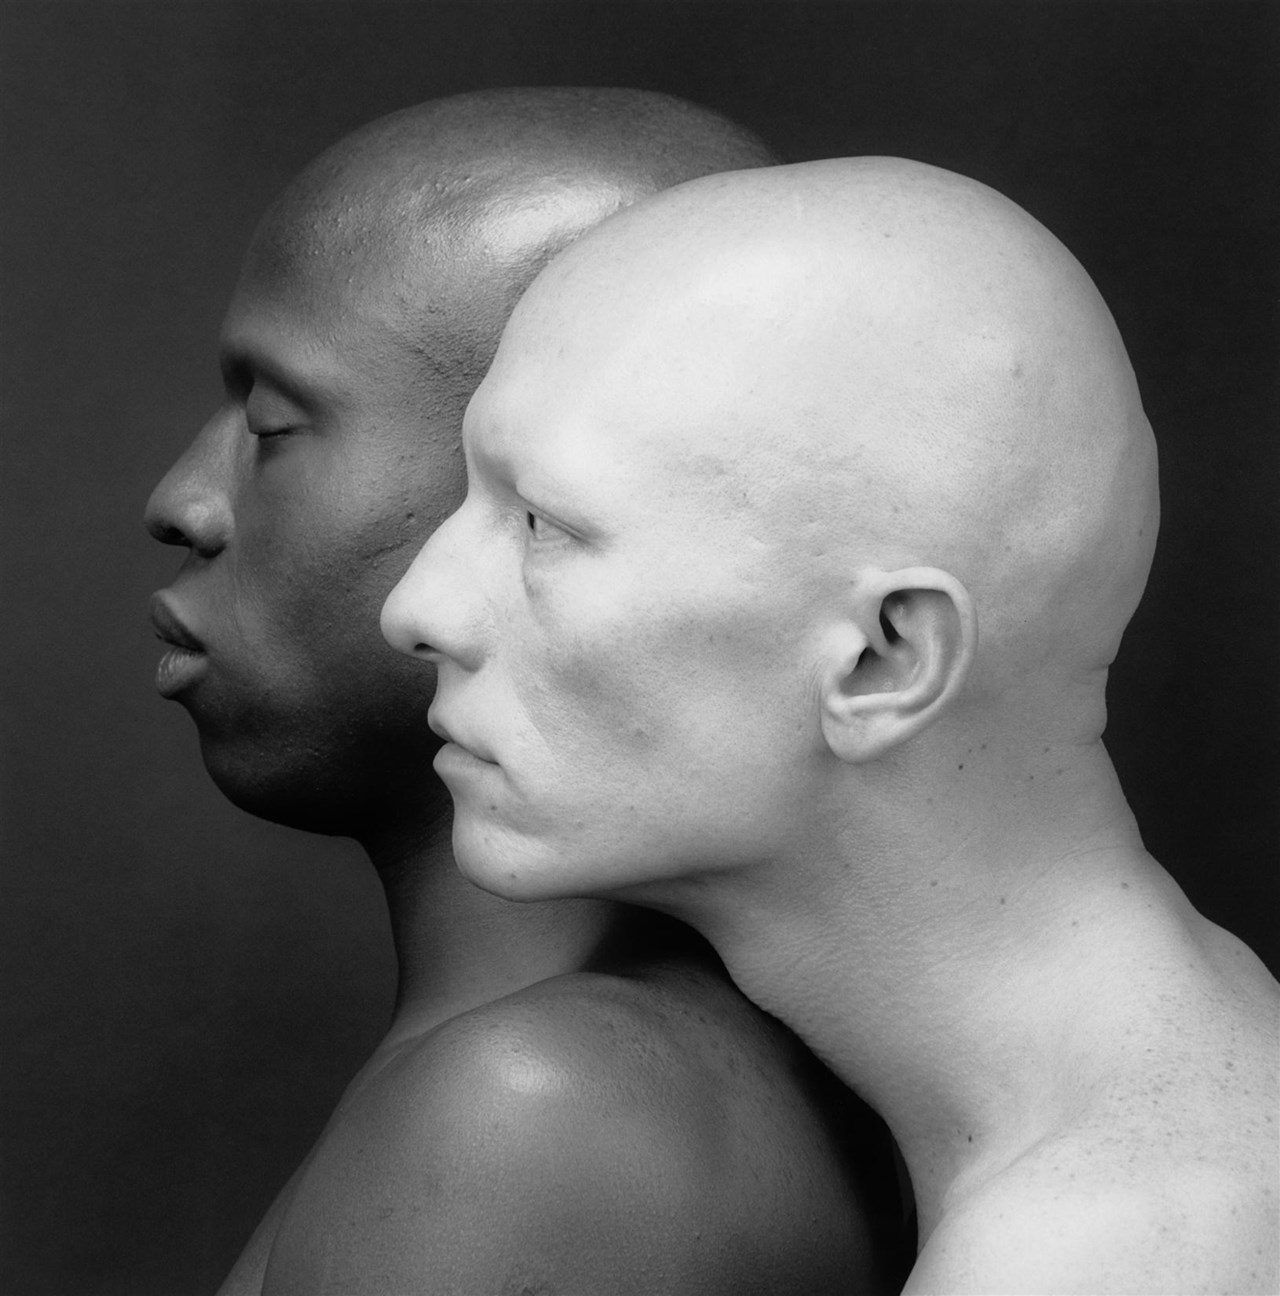 Ken Moody Robert Sherman 1984 interview Robert Mapplethorpe